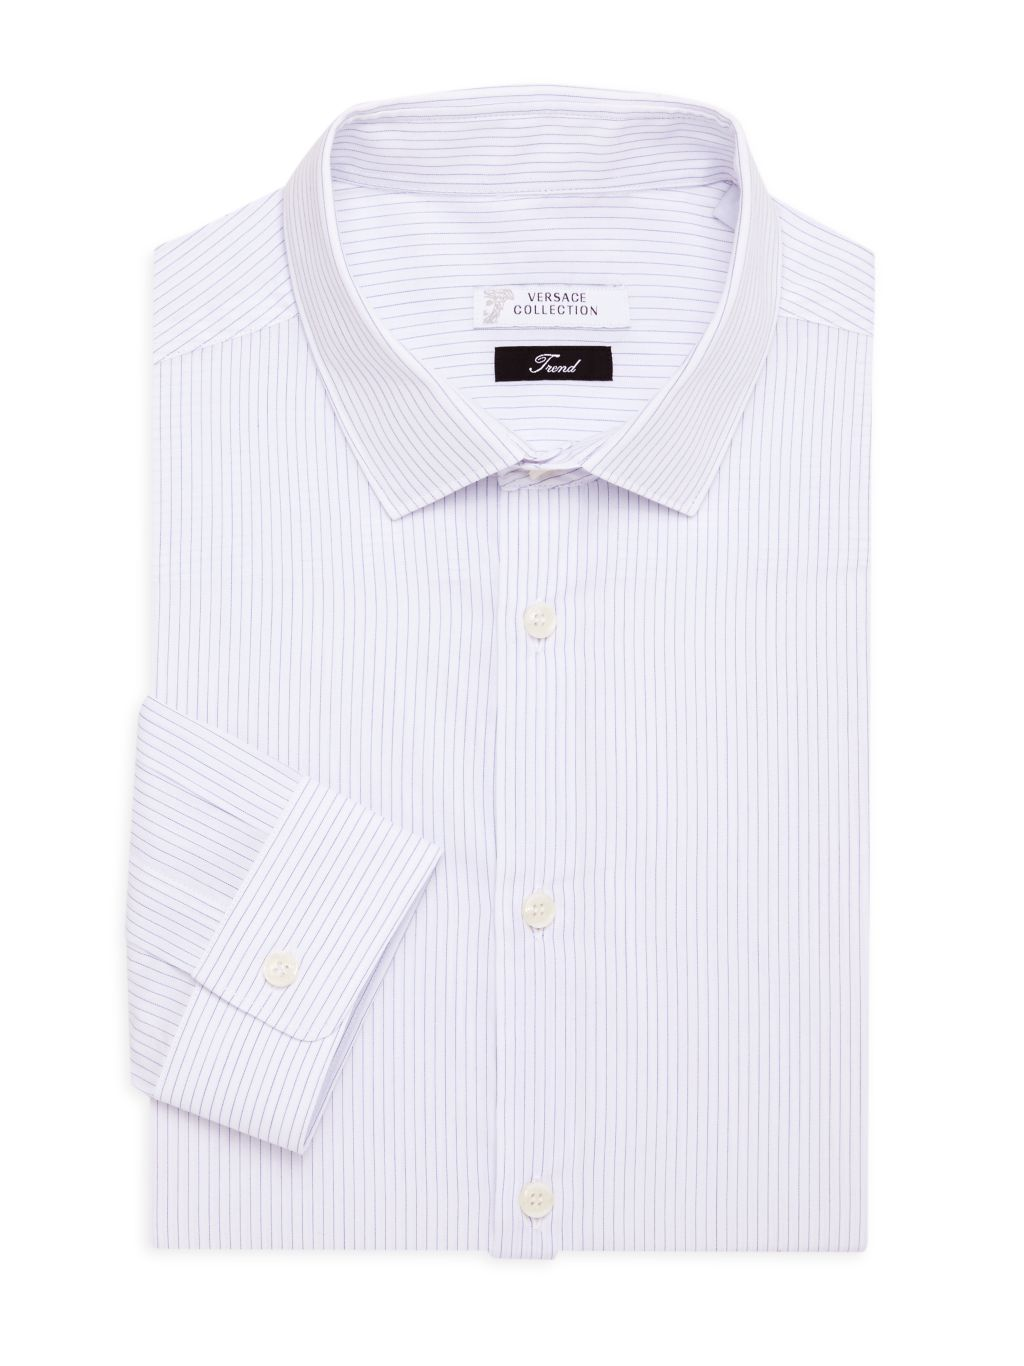 Versace Collection Trend-Fit Pinstripe Shirt